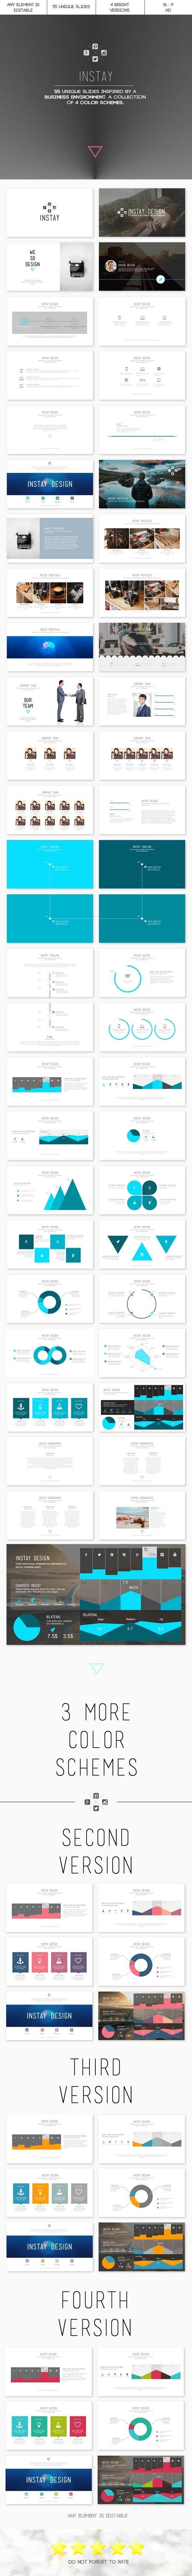 Instay - PowerPoint Template (PowerPoint Templates)